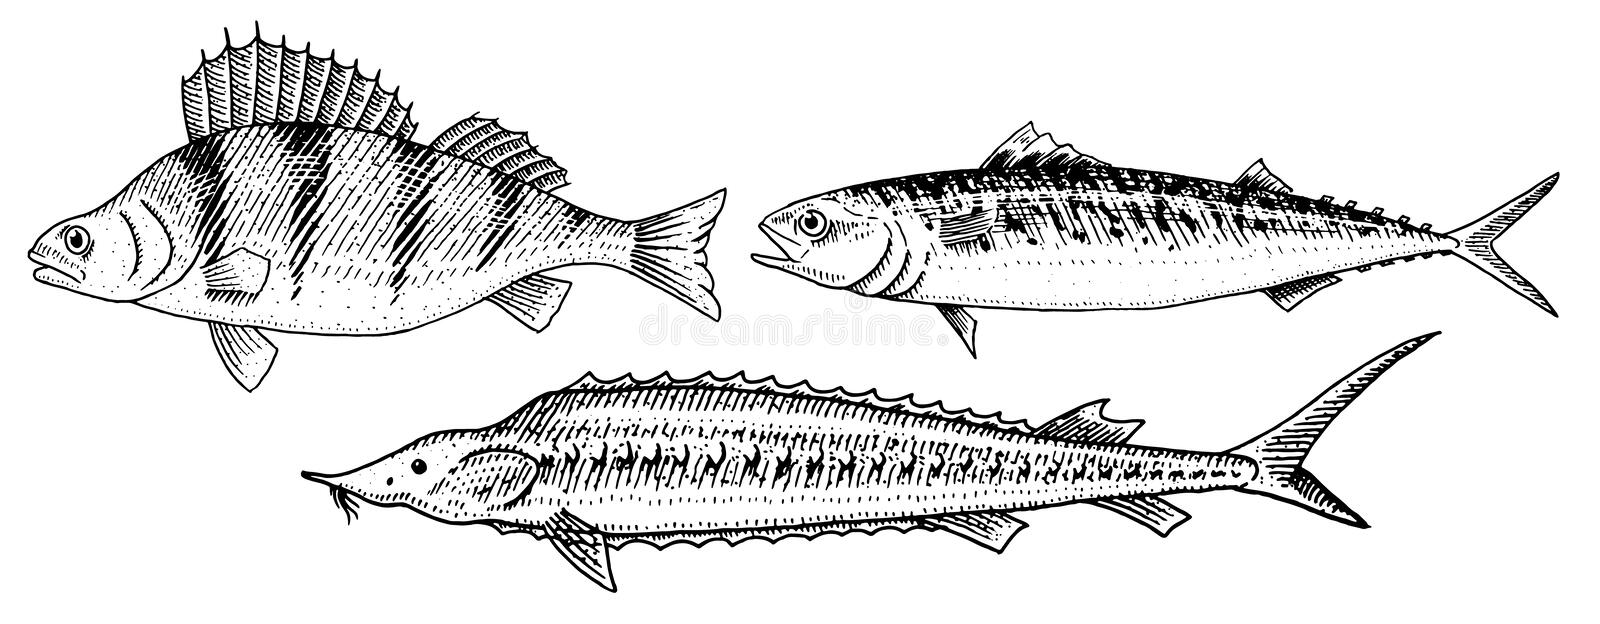 River and lake fish. Perch or bass, Scomber or mackerel, beluga and sturgeon. Sea creatures. Freshwater aquarium. Seafood for the menu. Engraved hand drawn in stock illustration